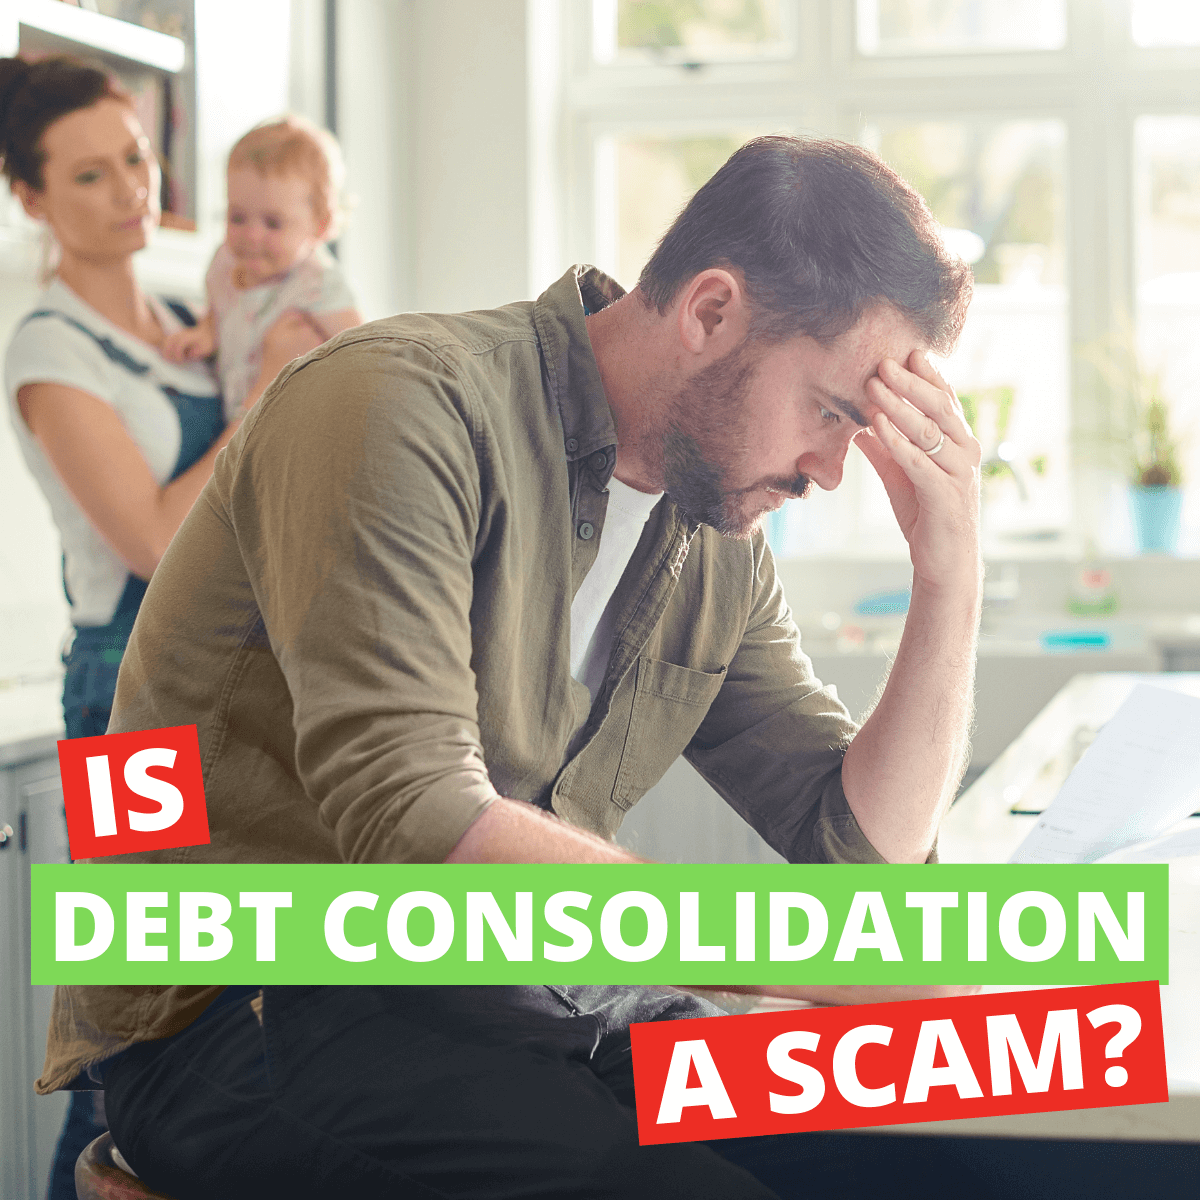 Are Debt Consolidation Programs A Scam?